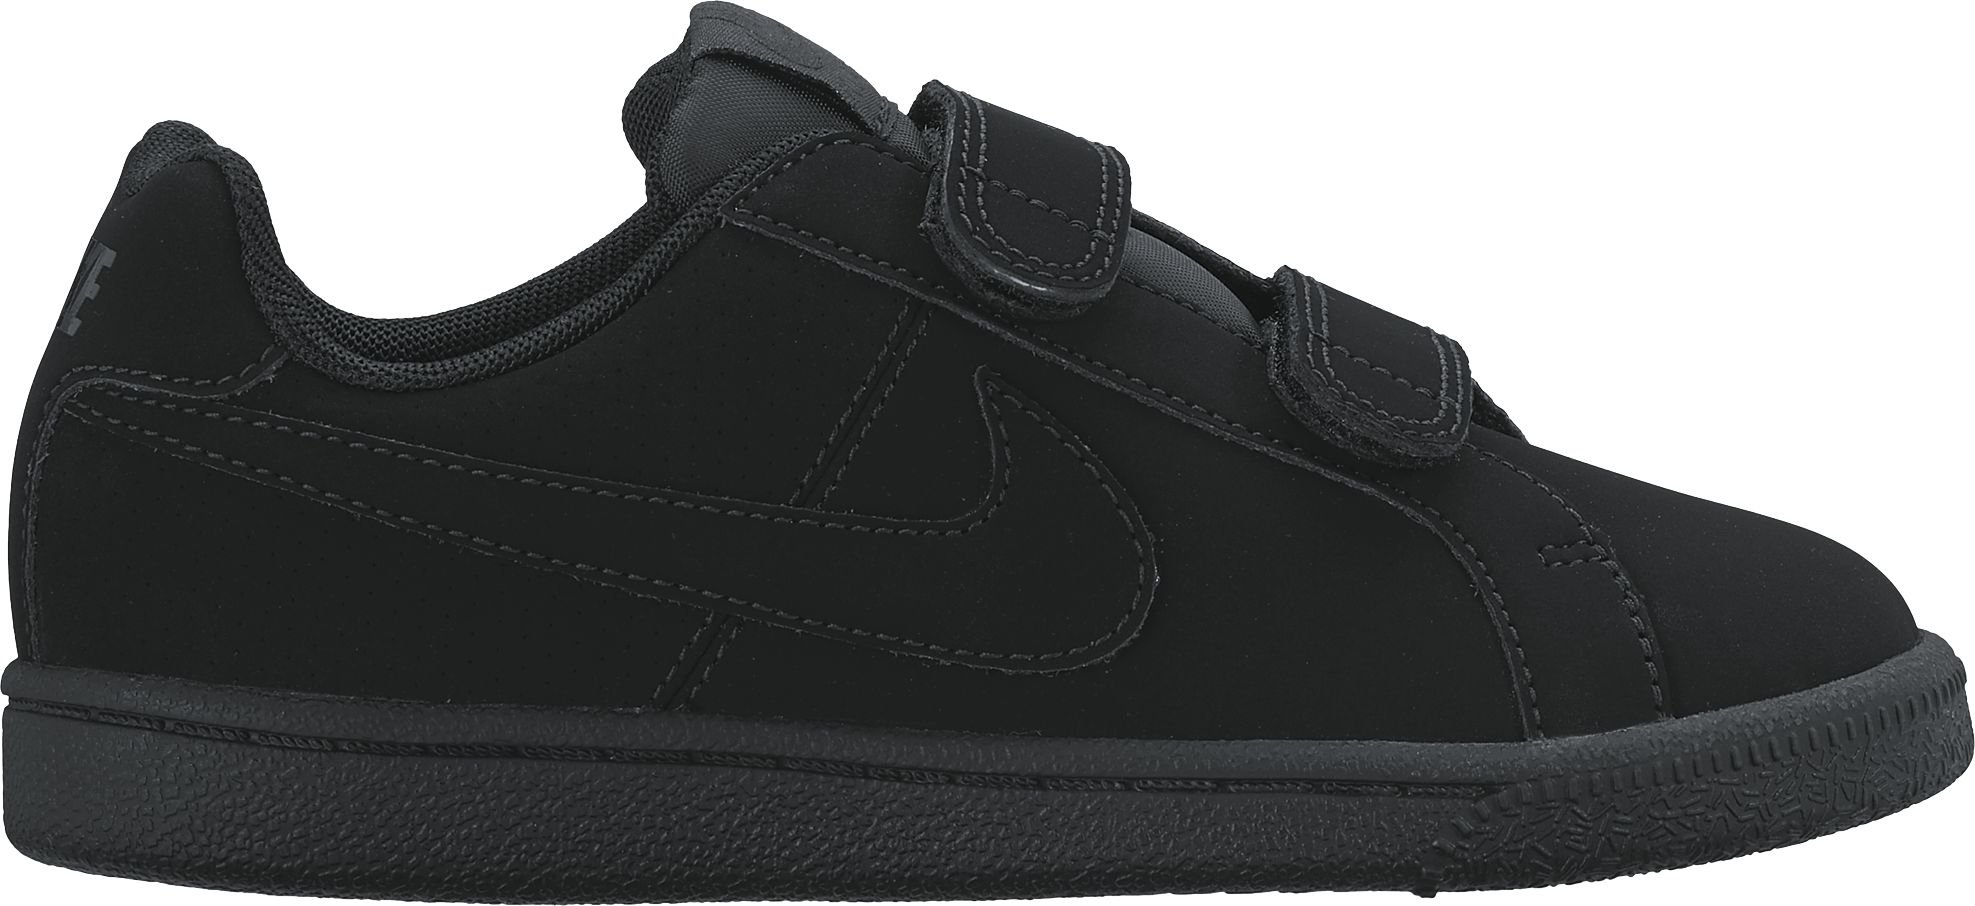 Nike Court Royale Little Kids Style Shoes : 833536, Black/Black, 12